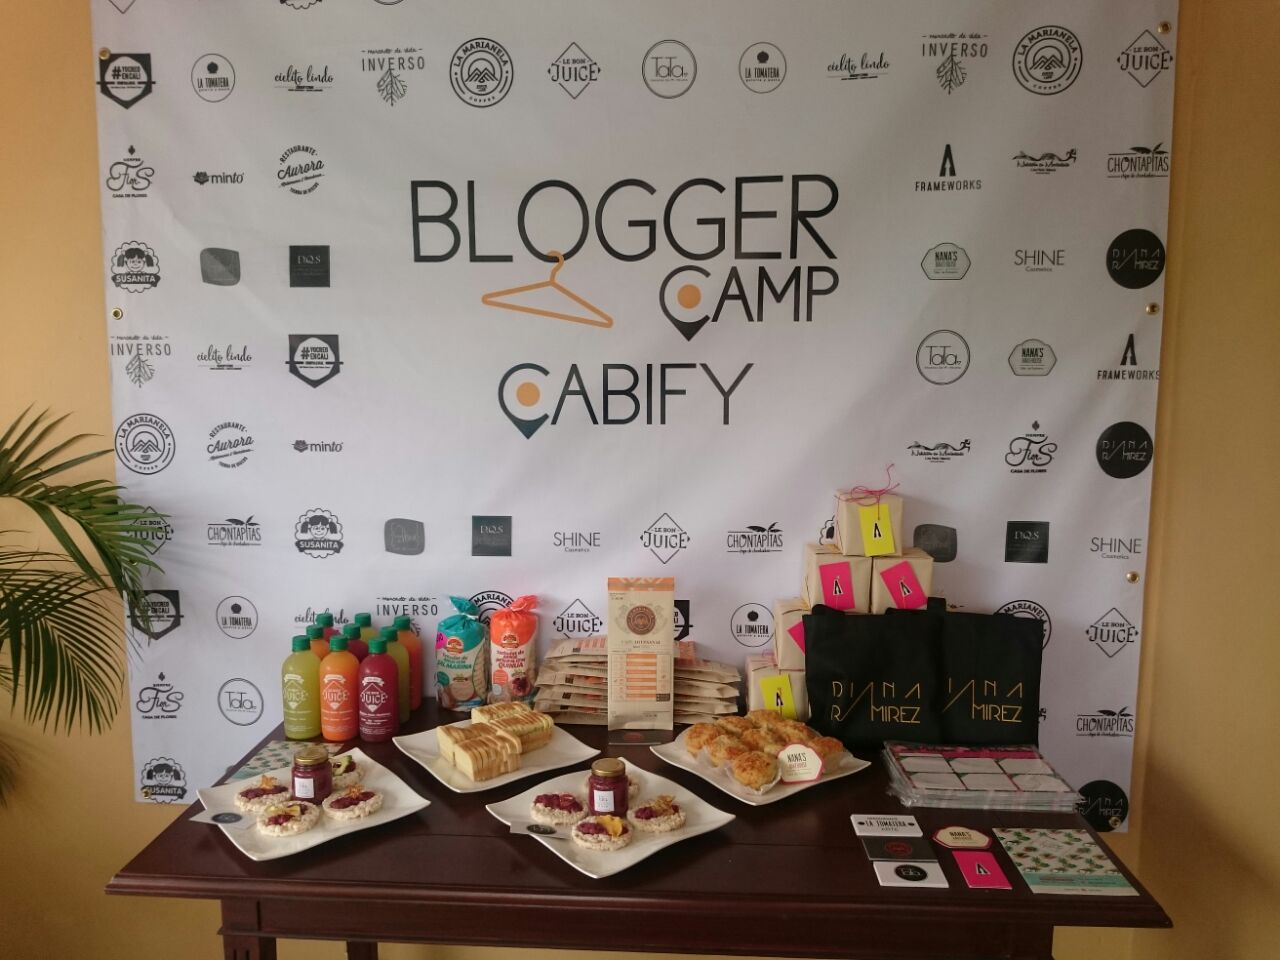 Bloggers camp cali Caliexposhow